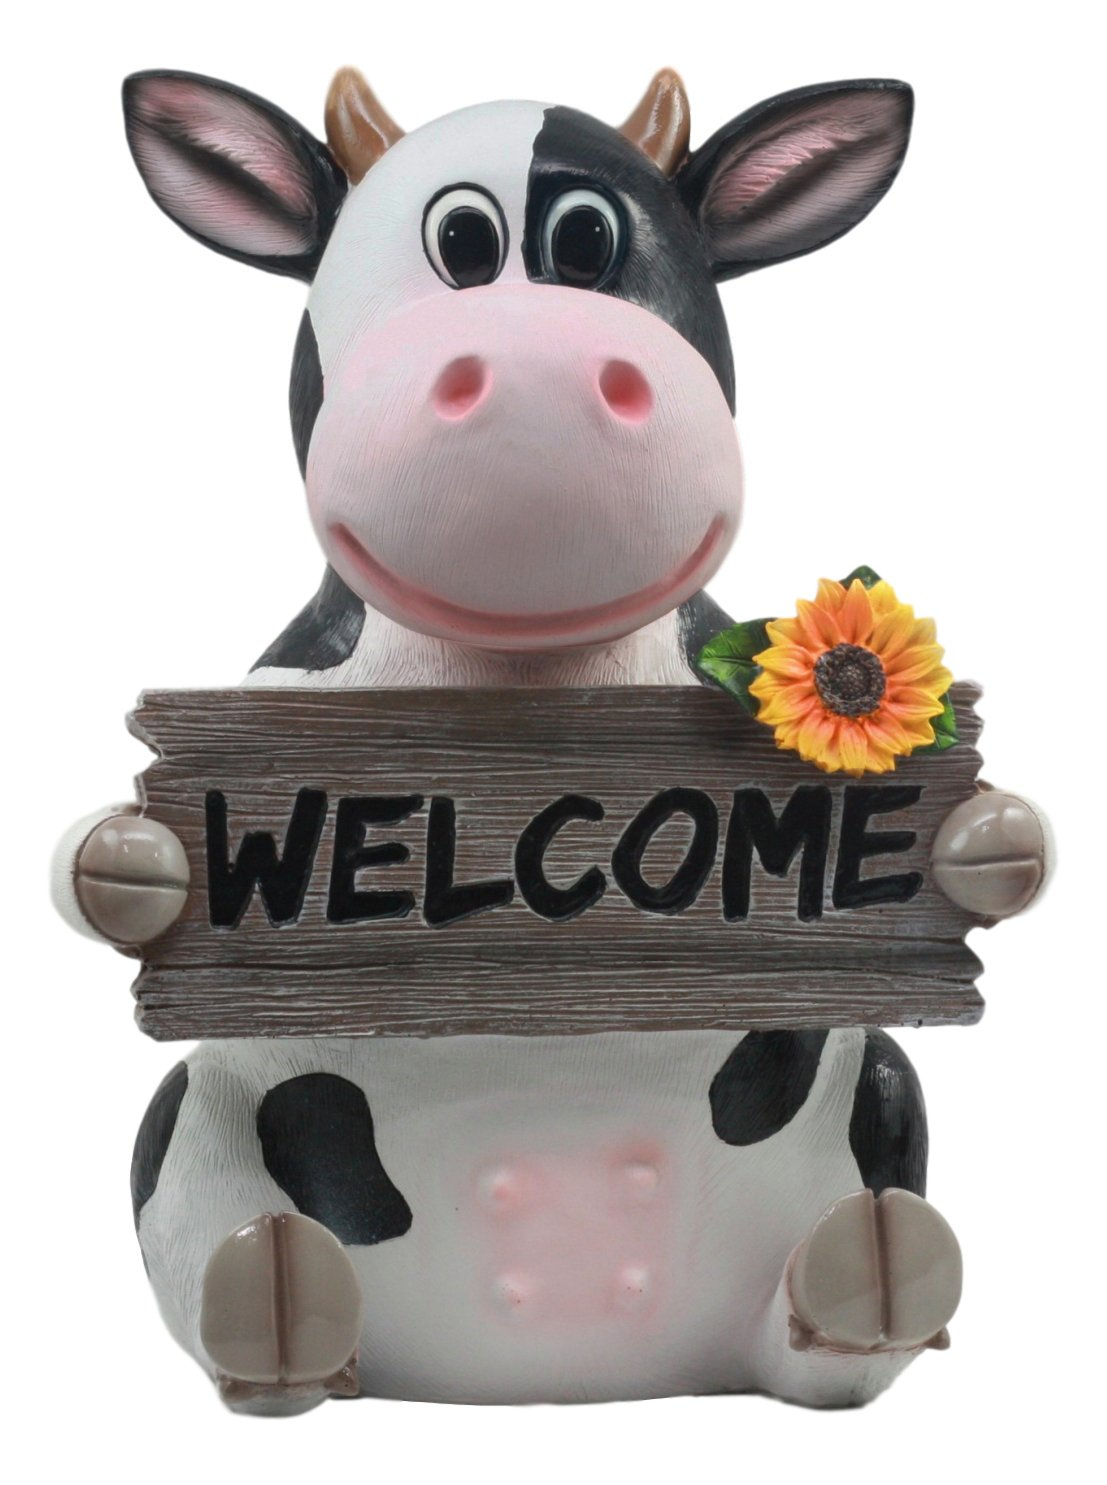 Ebros Animal Farm Whimsical Holstein Cow with Welcome Sign Statue 13'' Tall Sunflower Cow Garden Greeter Figurine